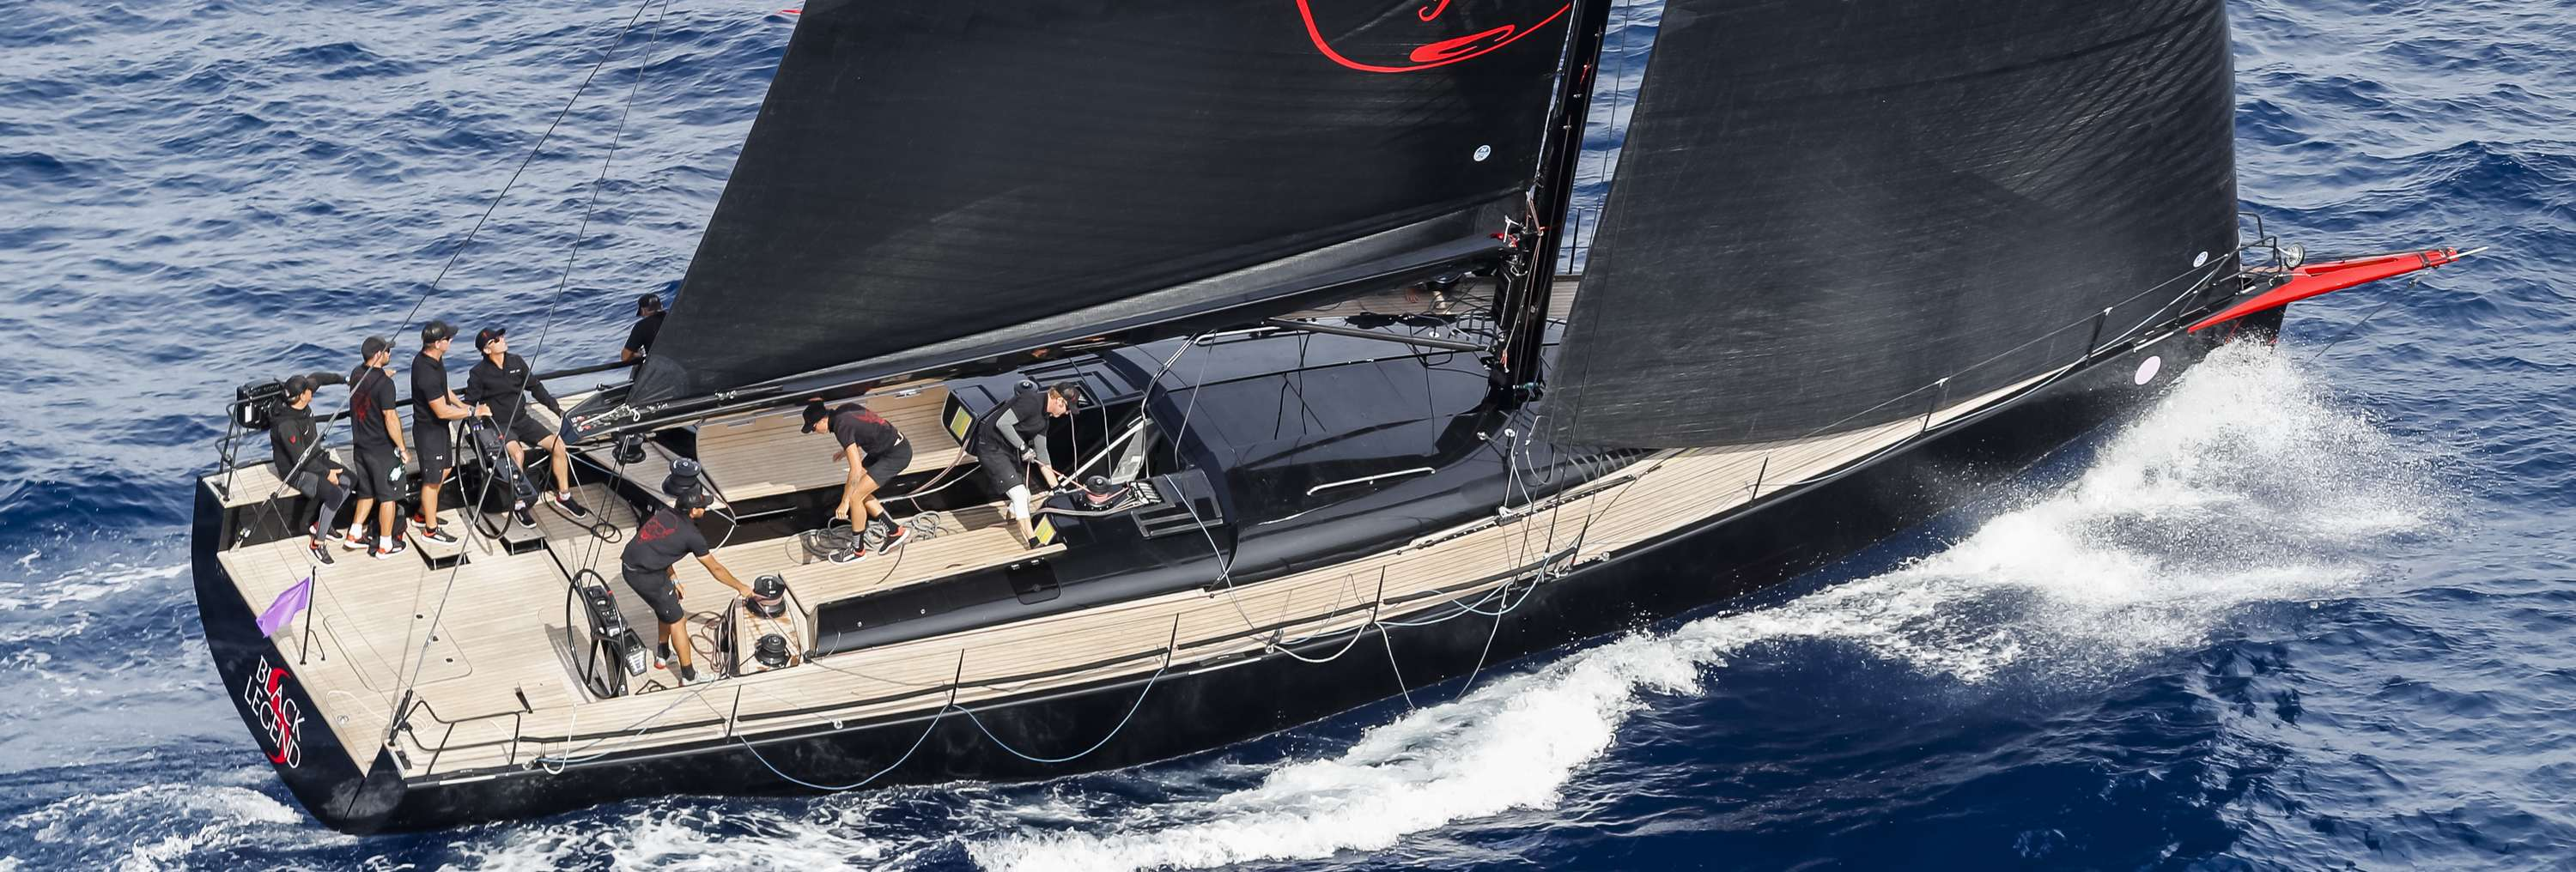 BLACK LEGEND S: Price reduction